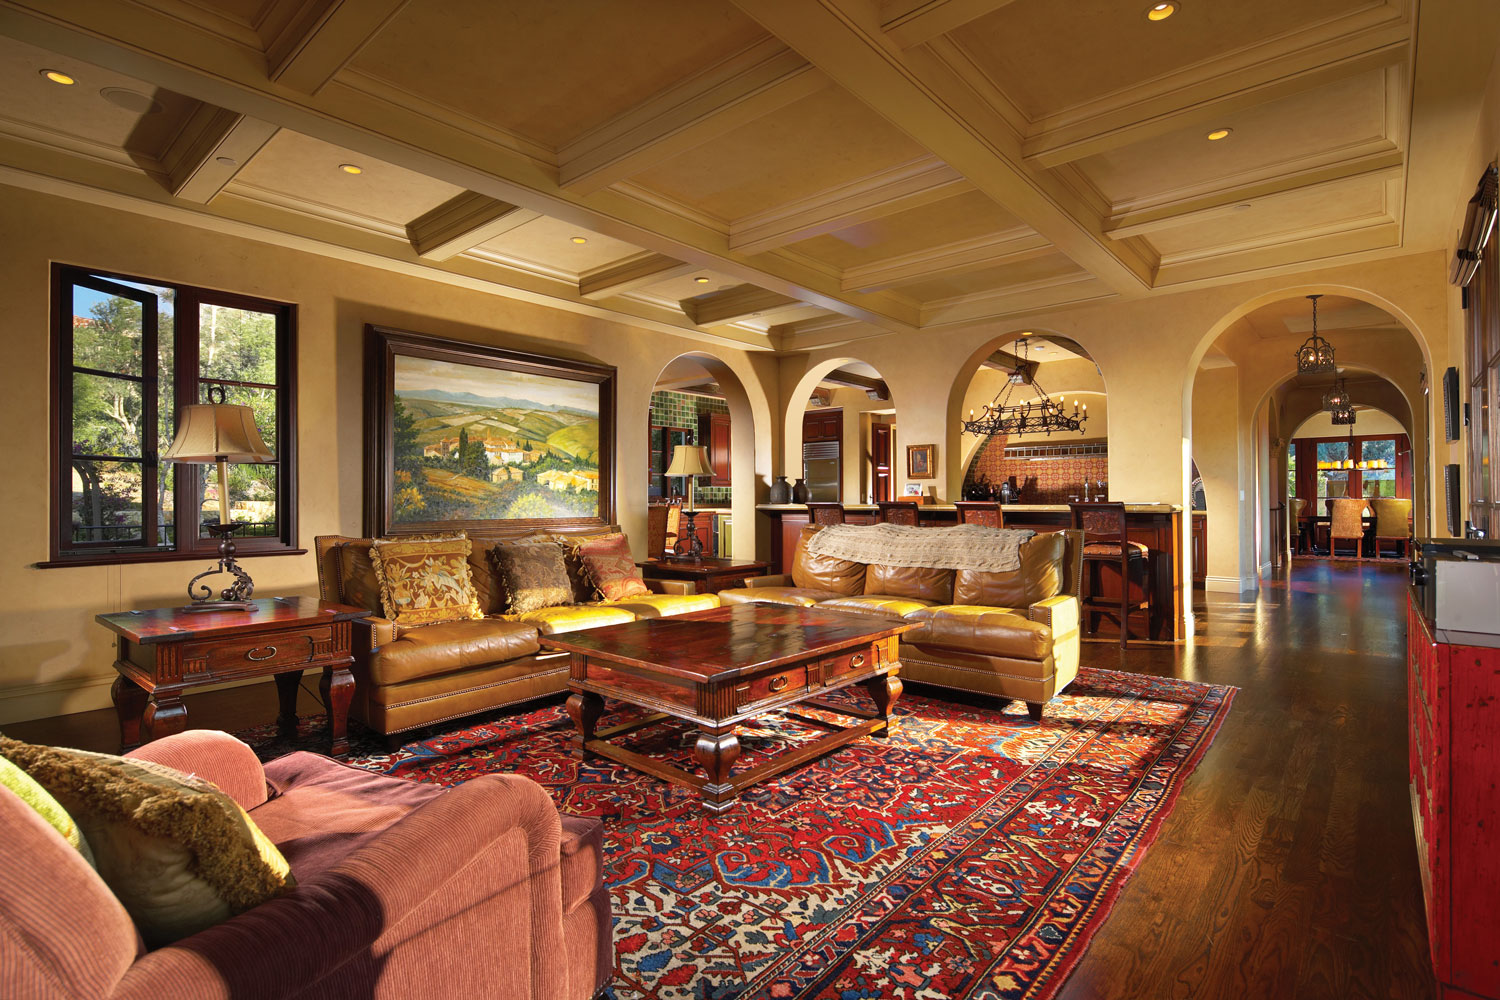 Spanish-Family-Room-Coffered-Ceiling-Archways-Corbin-Reeves.jpg